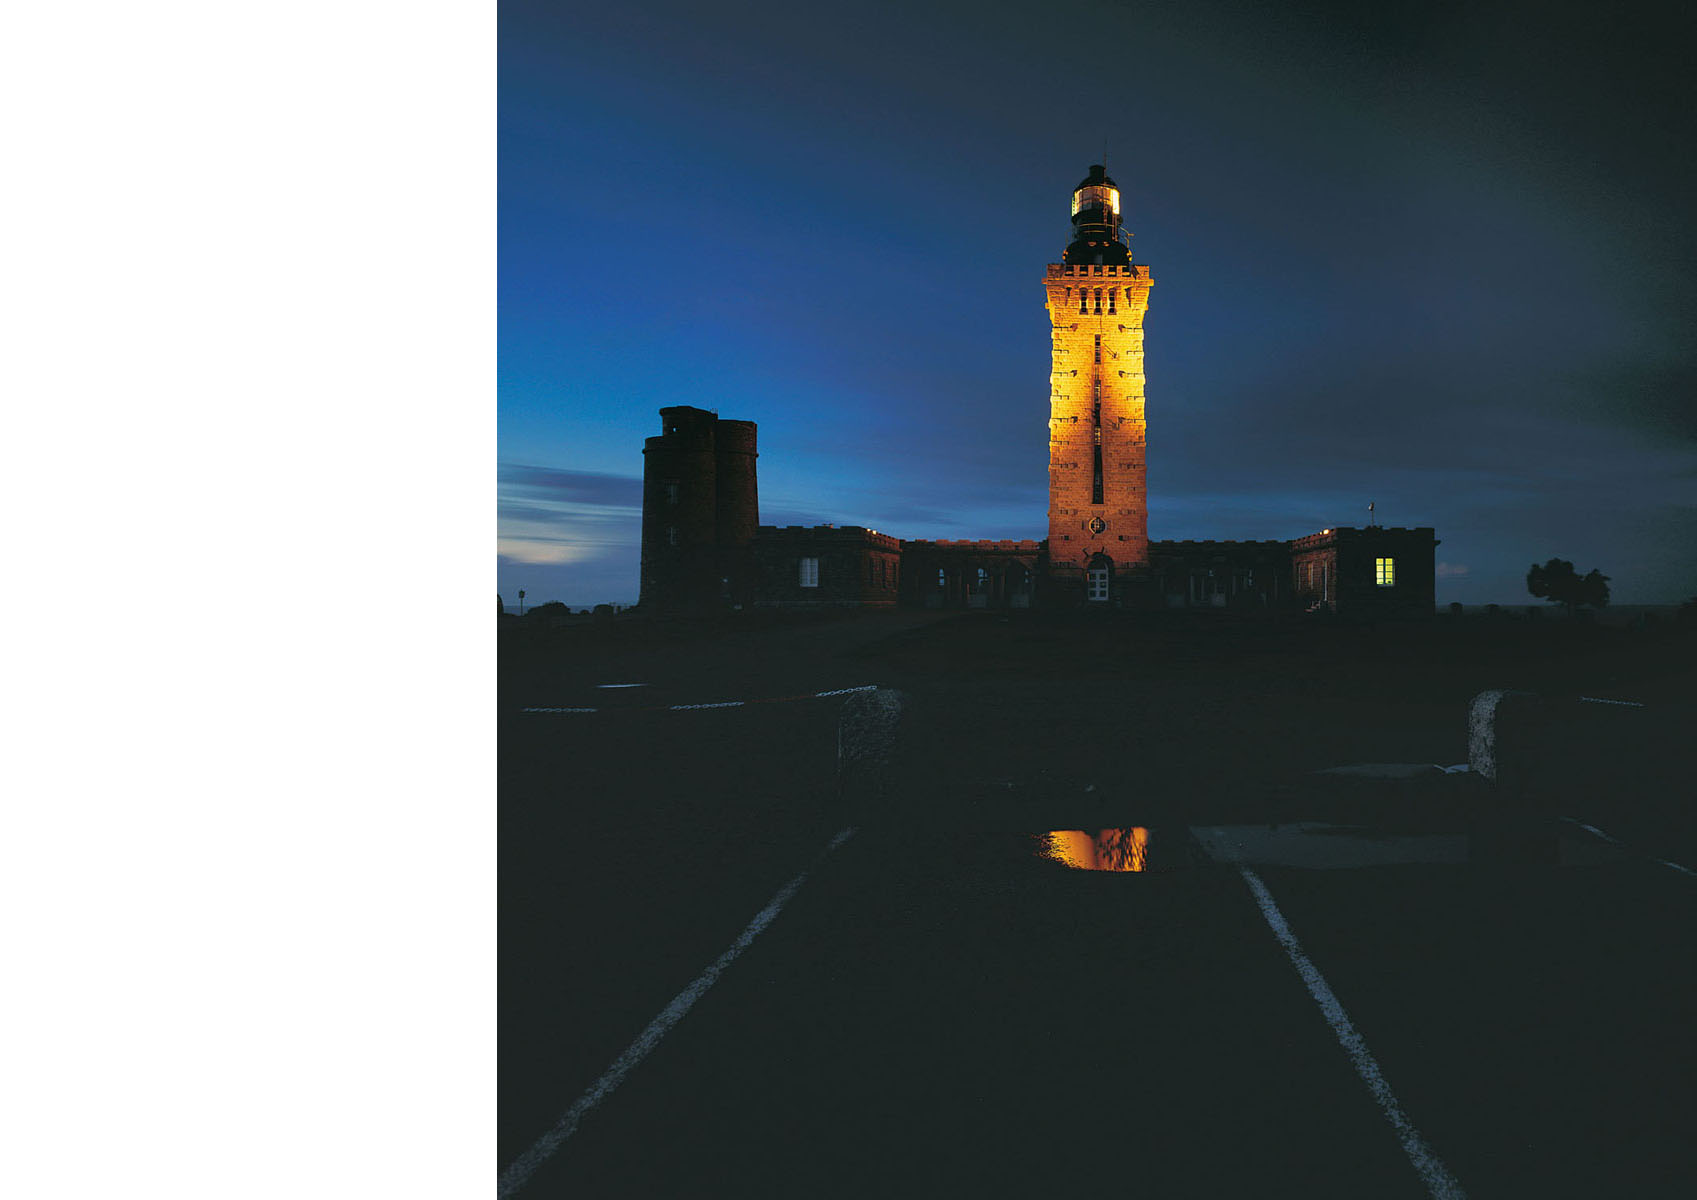 lighthouses65